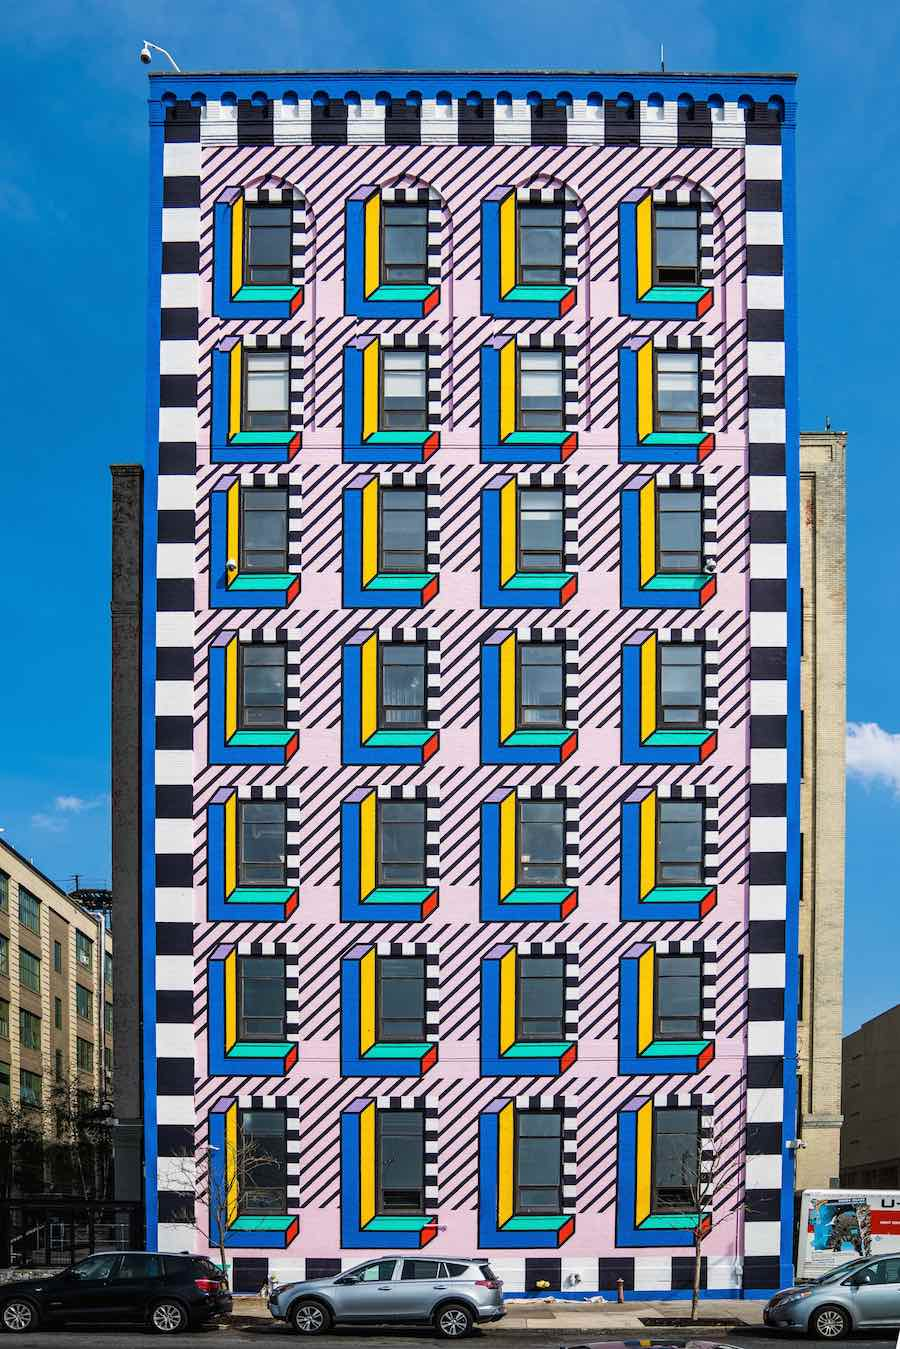 Memphis-inspired mural by Camille Walala for WantedDesign - Photo: courtesy of Industry City.